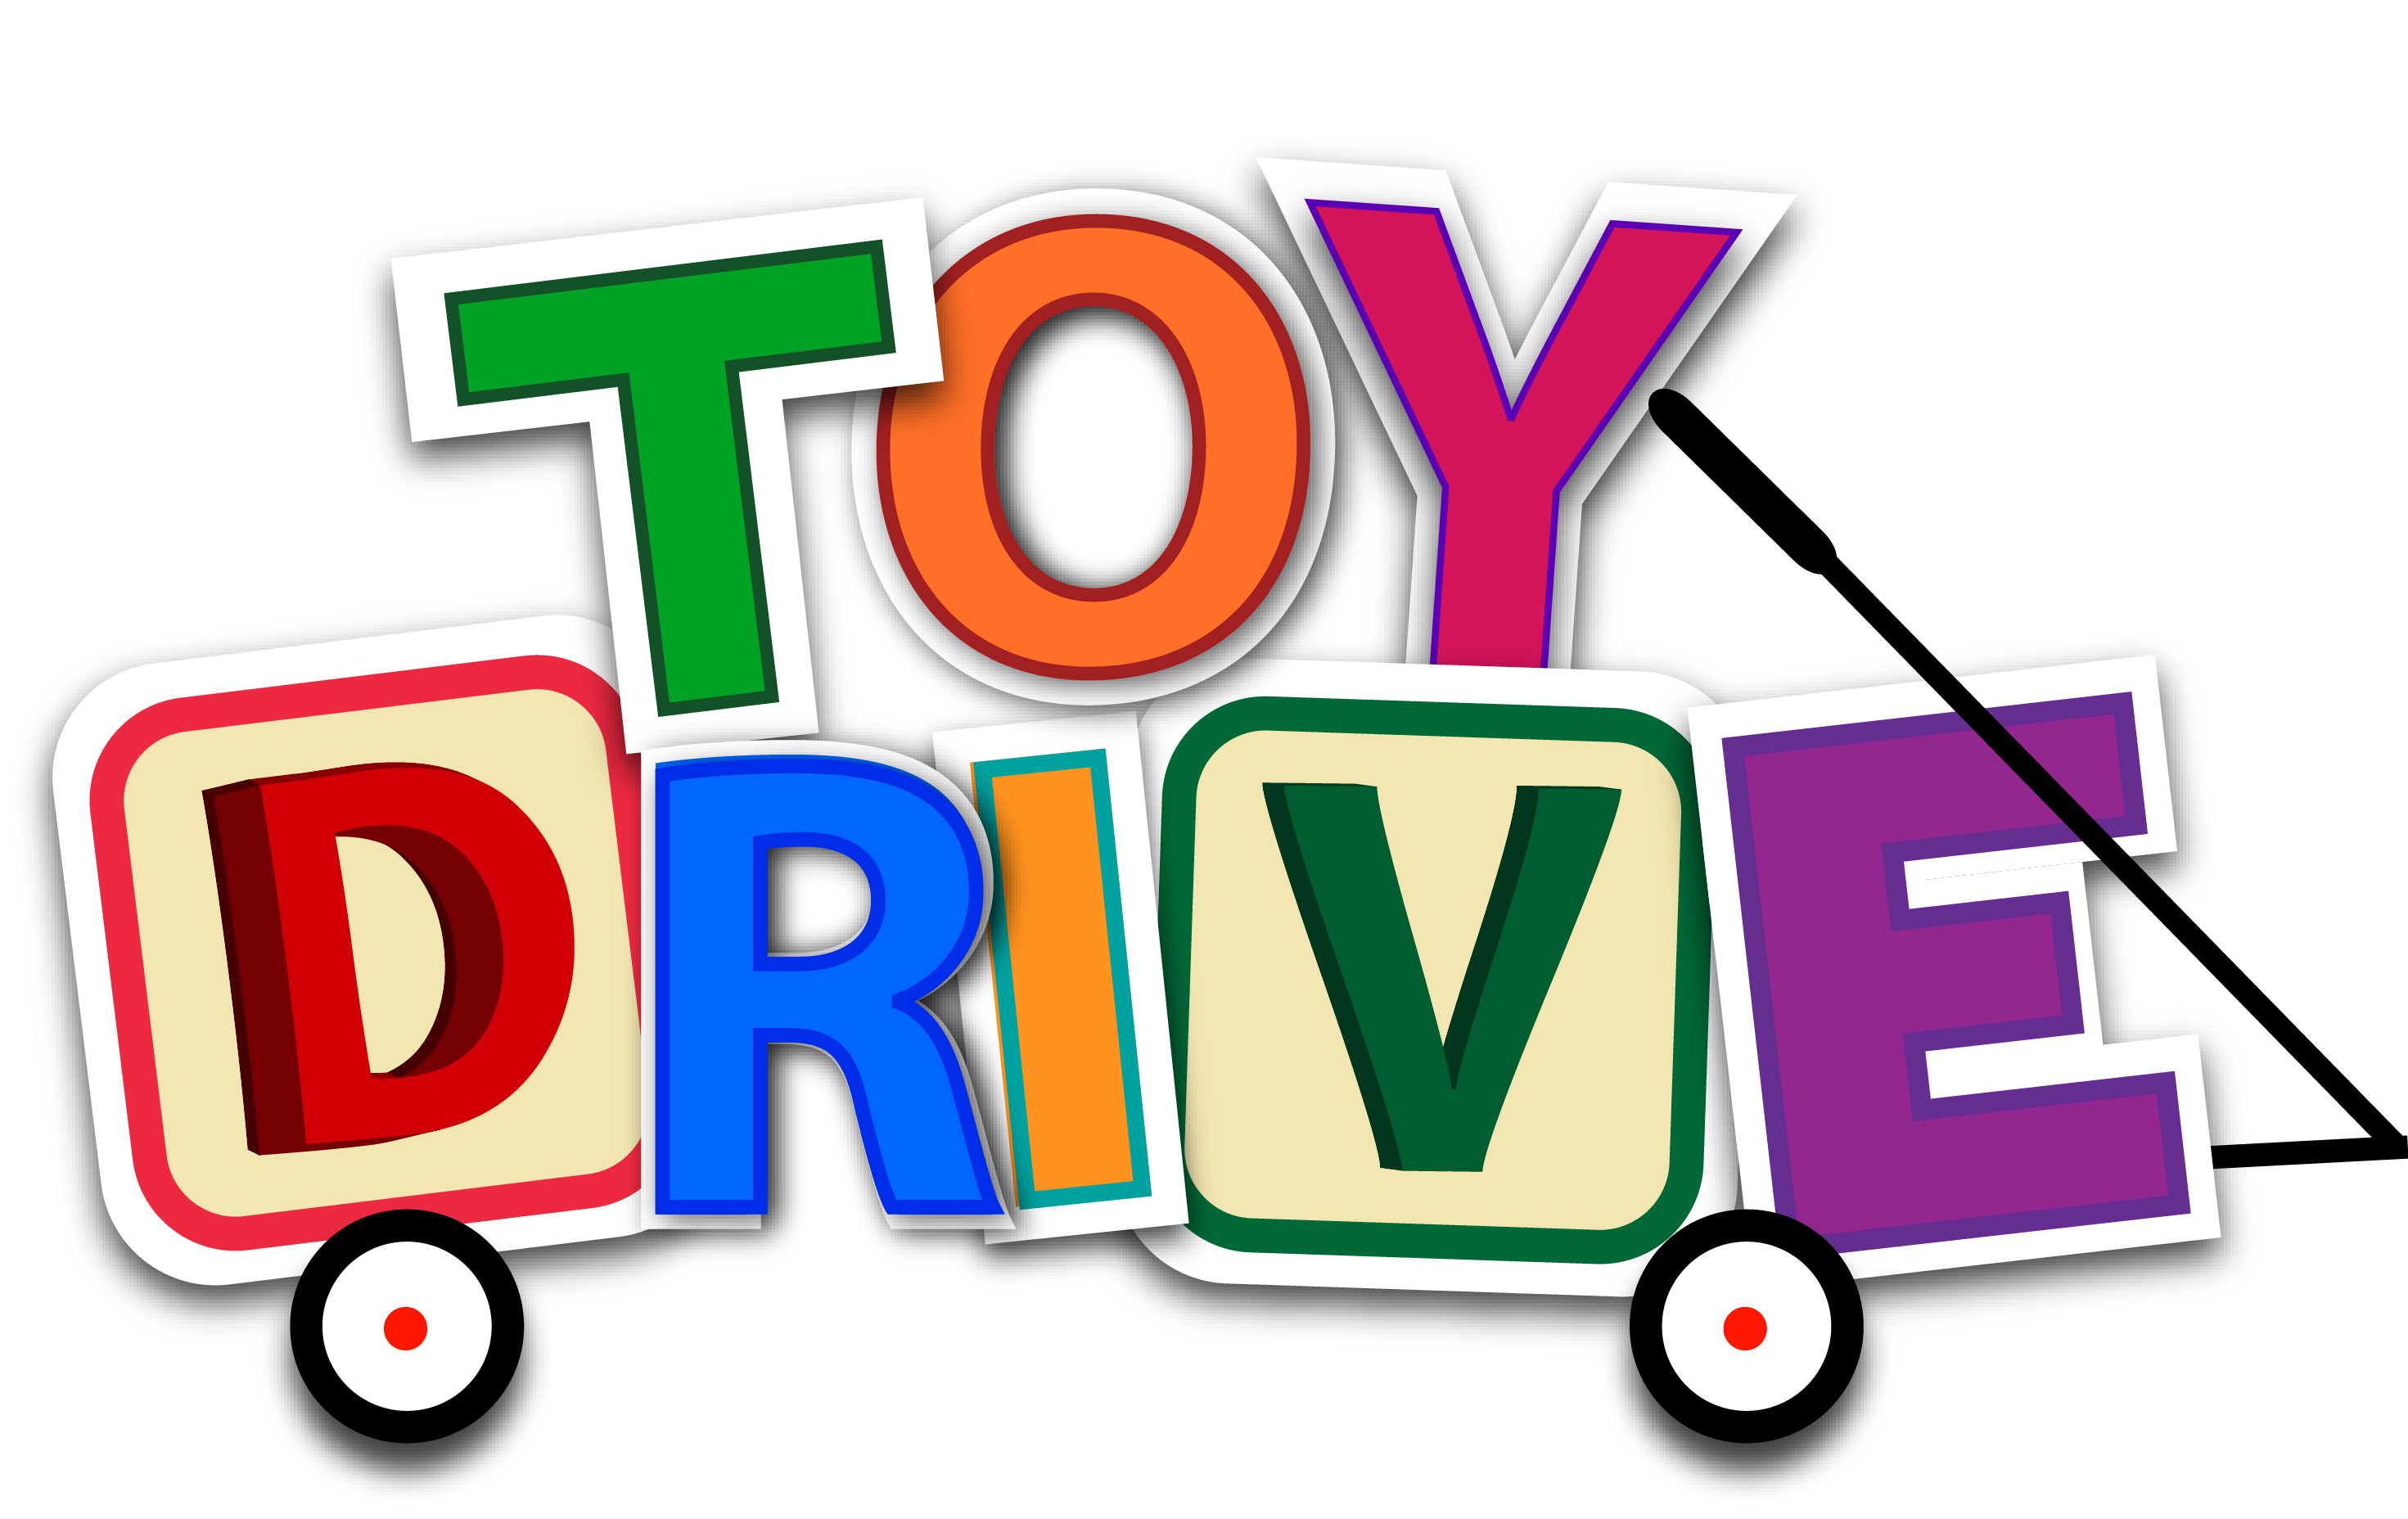 Toy Drive Clip Art : Cape coral fire department annual toy drive